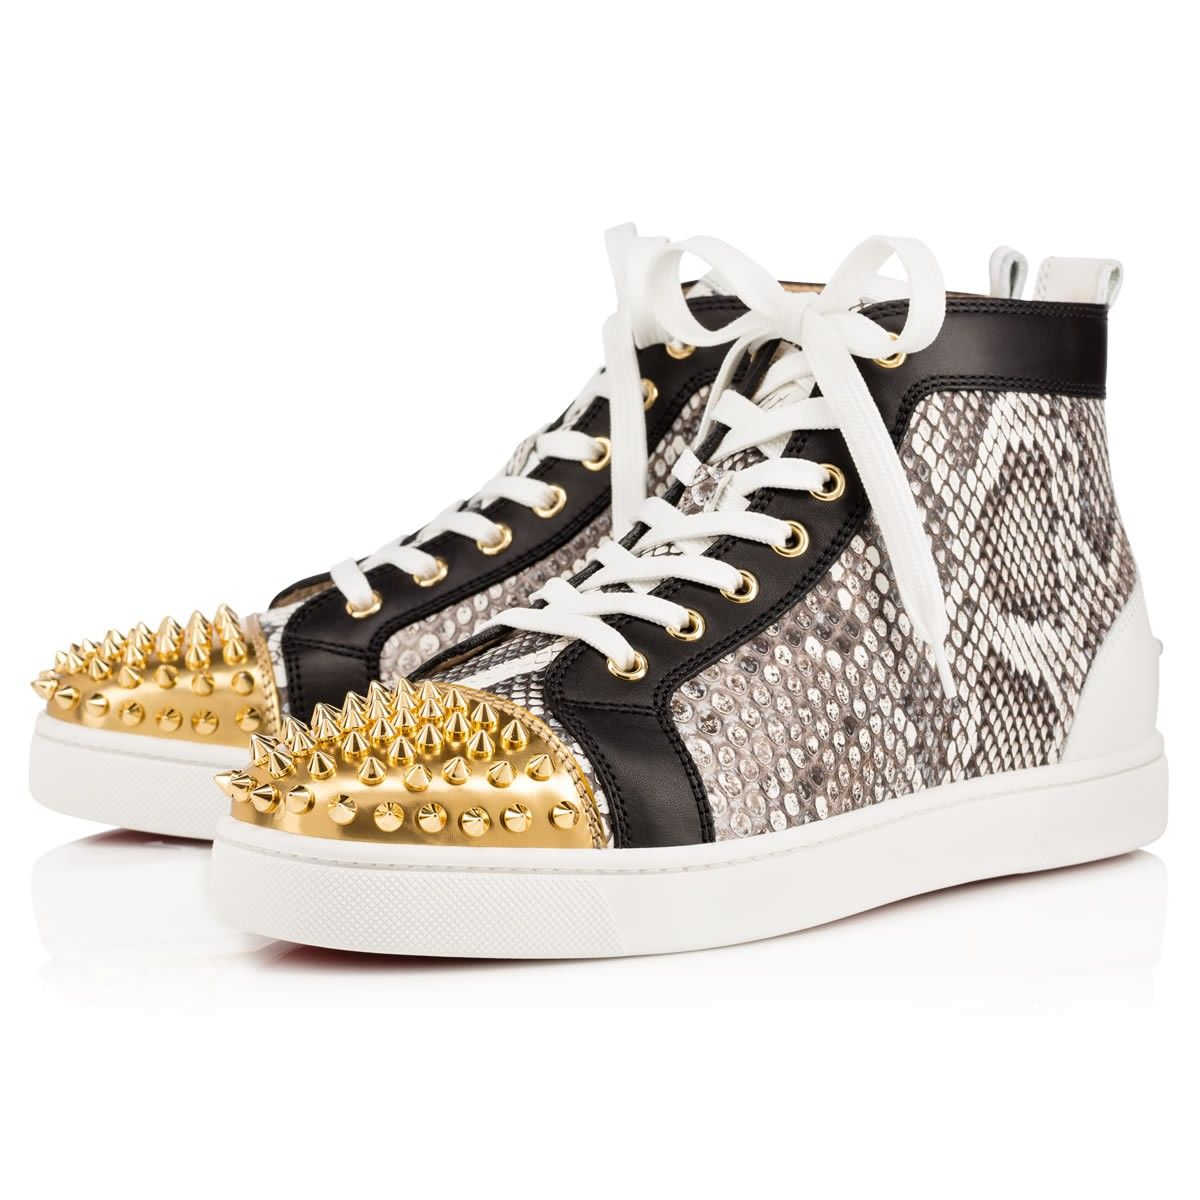 74b686af355 Christian Louboutin Louis flat studded gold toe sneakers. | My Style ...